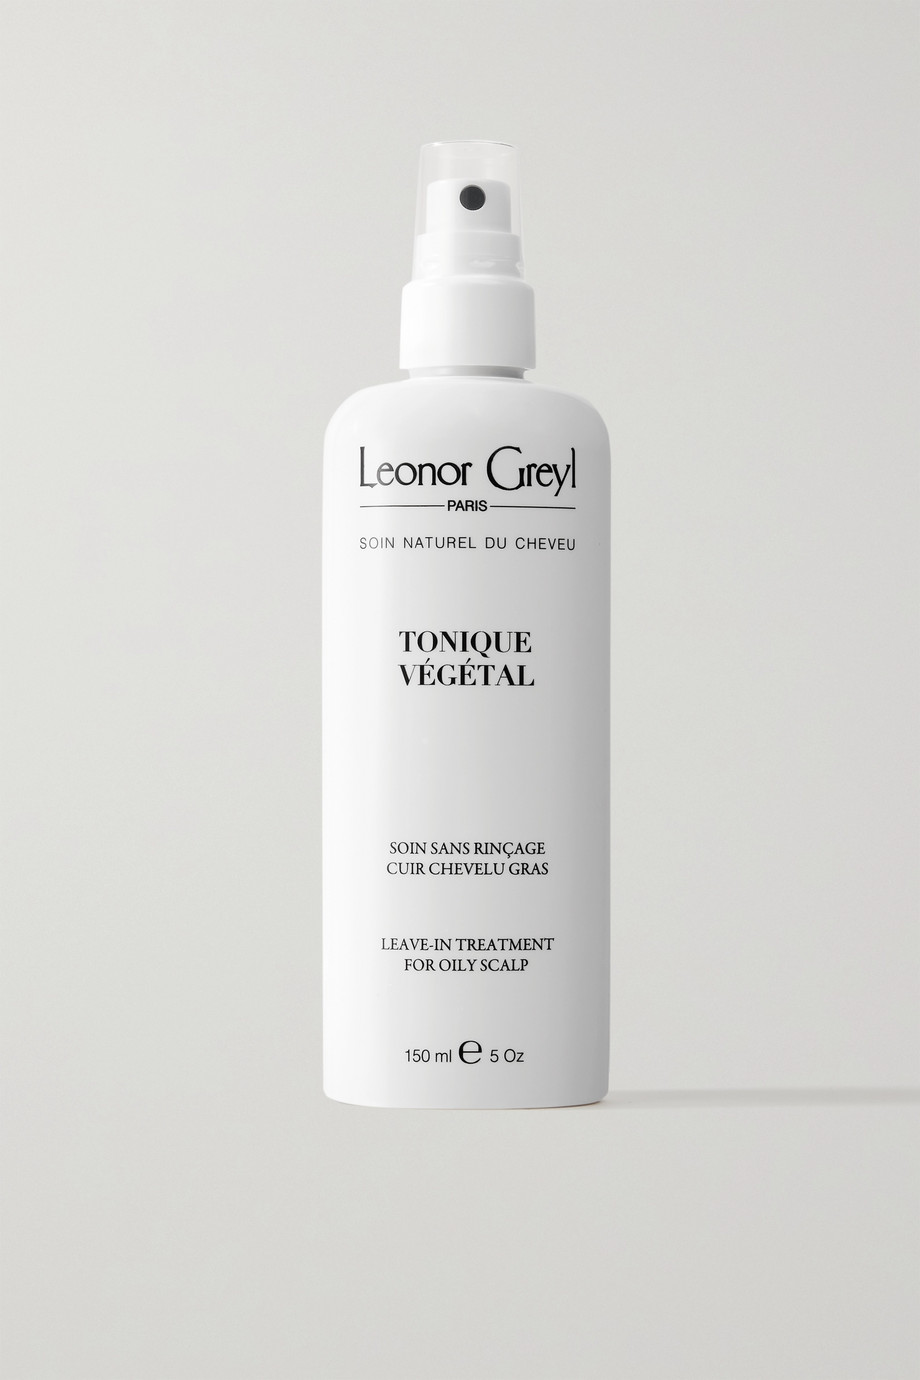 Leonor Greyl Paris Tonique Végétal Leave-In Treatment, 150ml